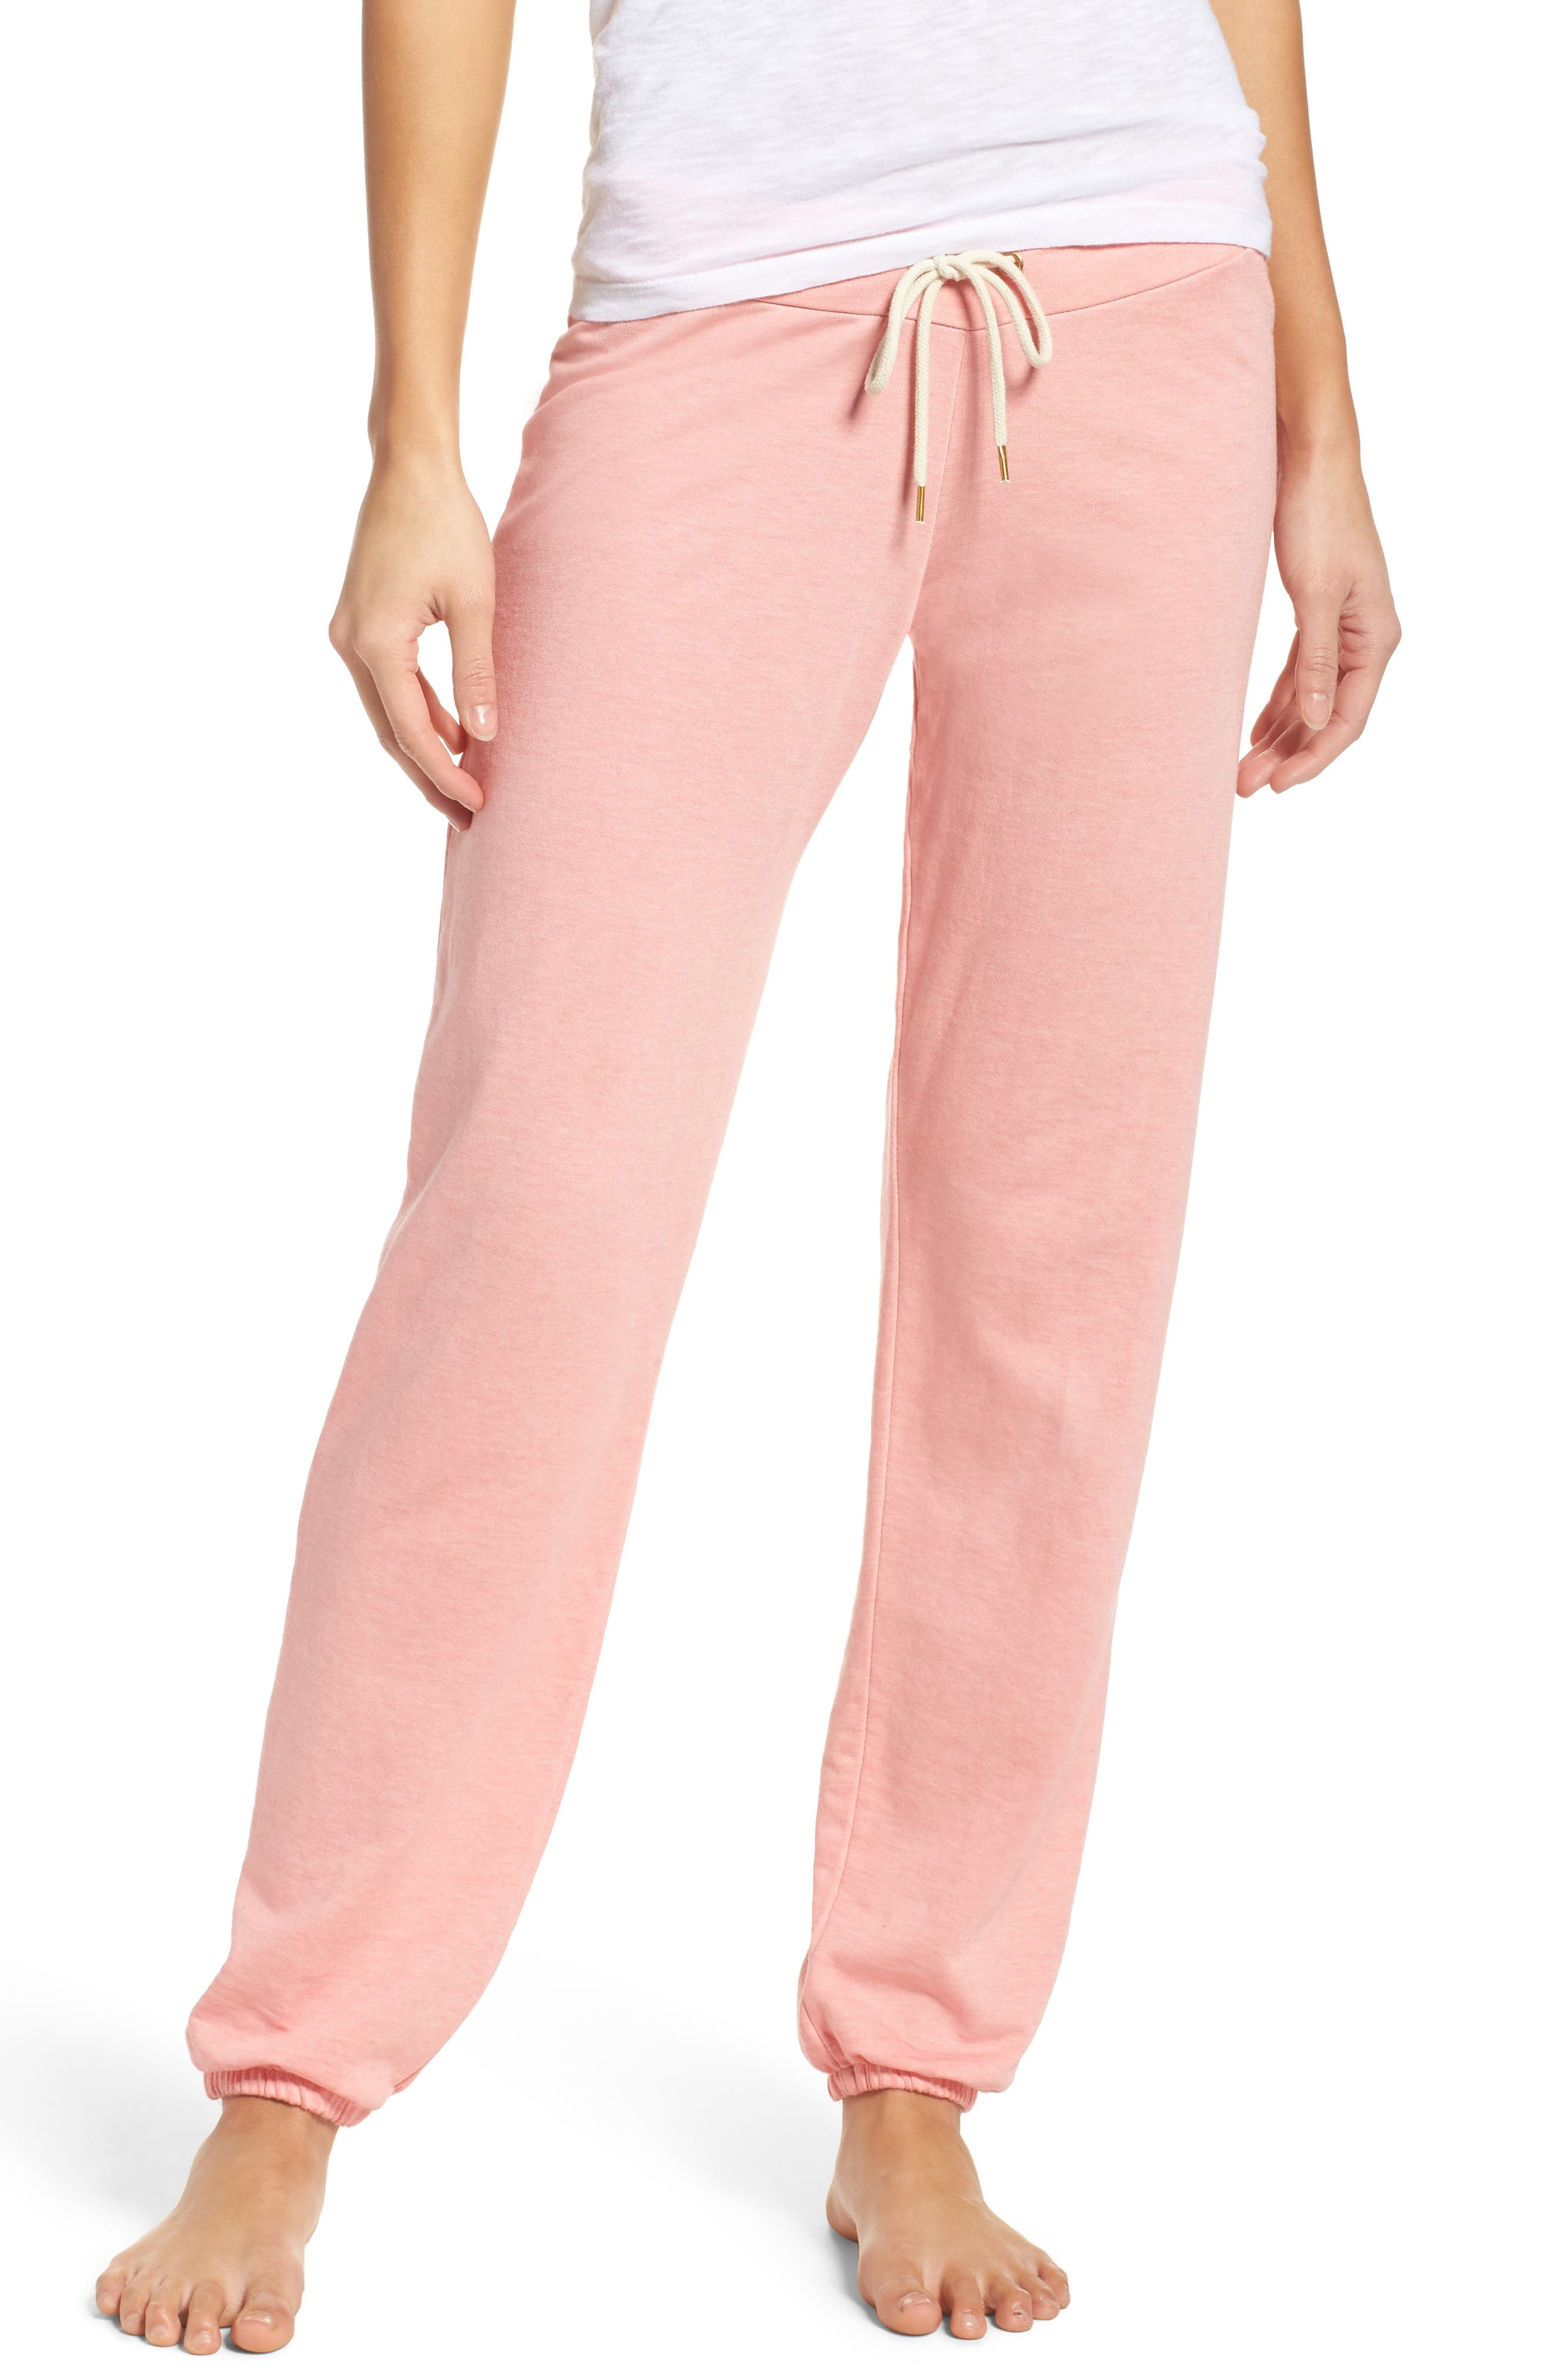 Honeydew Intimates French Terry Lounge Pants (Nordstrom Exclusive)